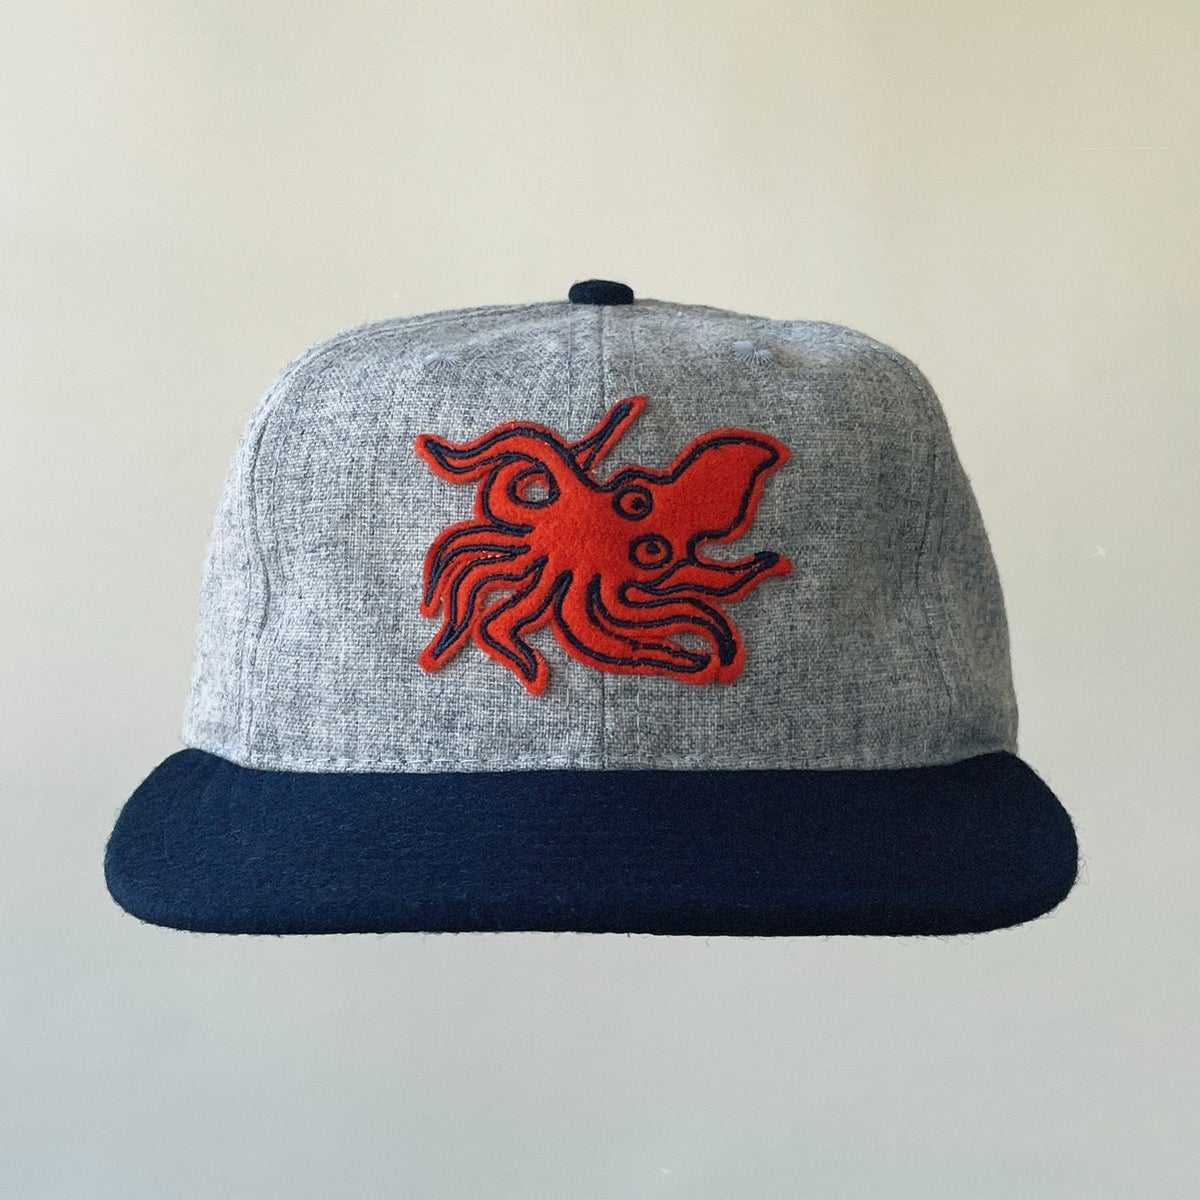 Image of Love Garden Squids - Ebbets Field 6 Panel Cap - Preorder to Arrive around May 1st, 2021